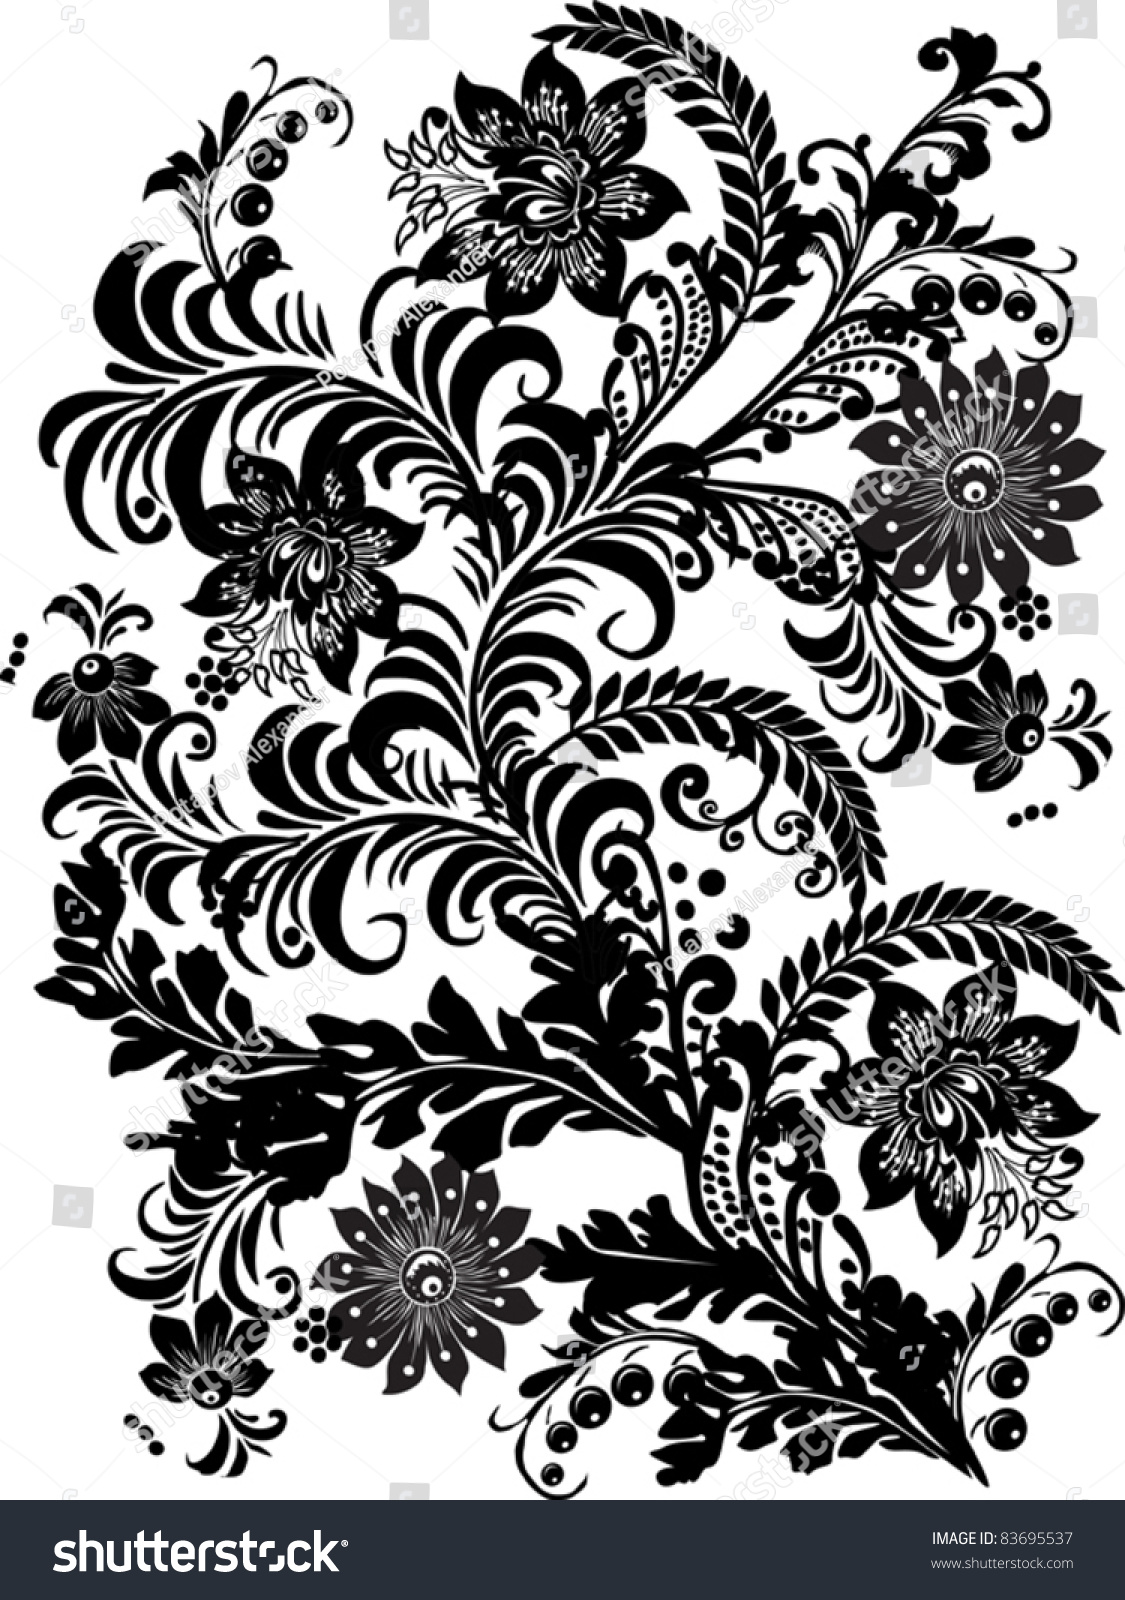 Illustration black flowers design on white stock vector royalty illustration with black flowers design on white background mightylinksfo